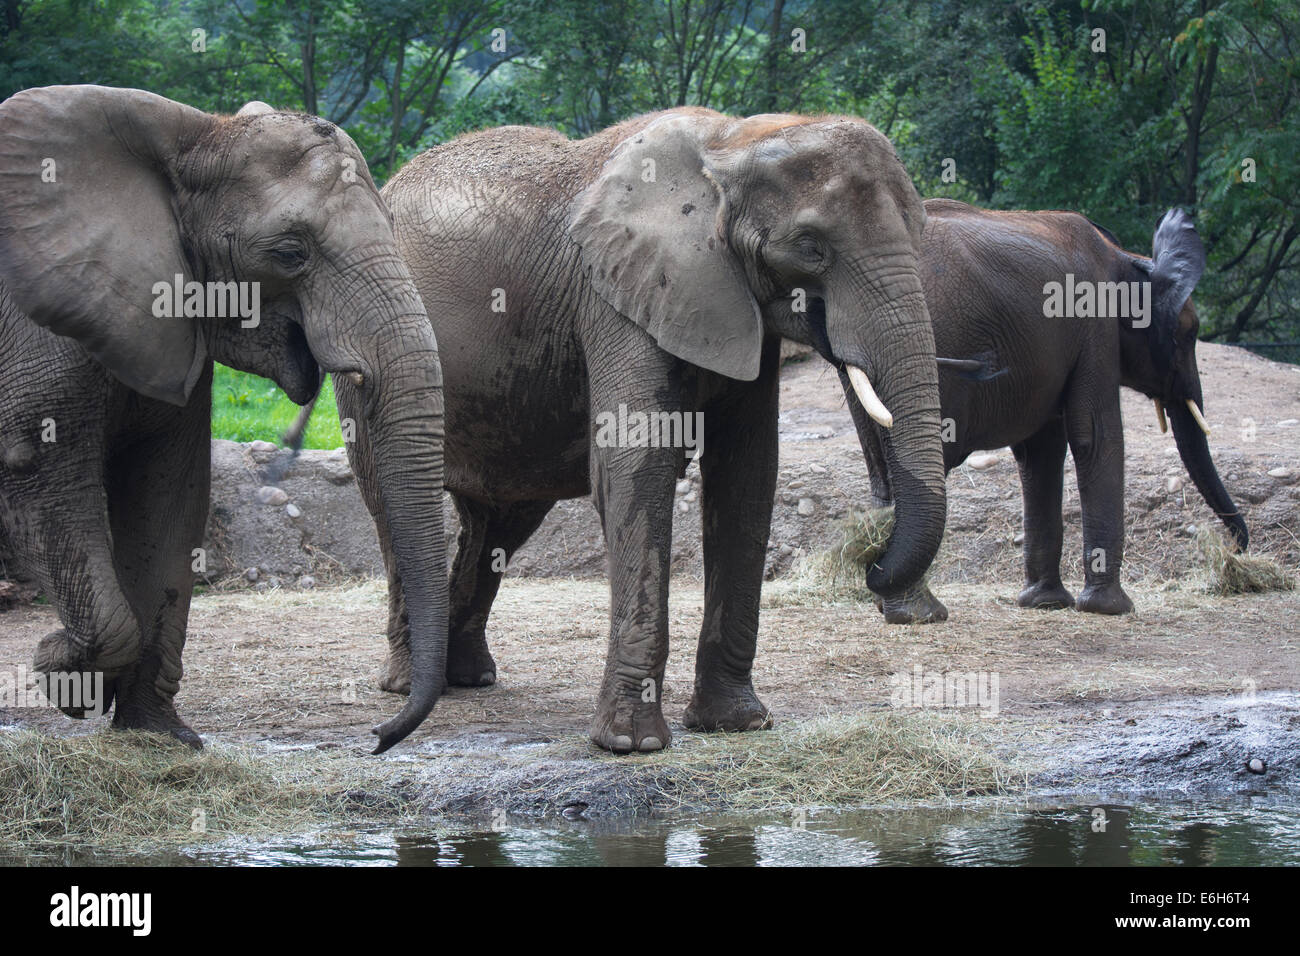 African elephants at the Pittsburgh Zoo, Pittsburgh, PA. - Stock Image